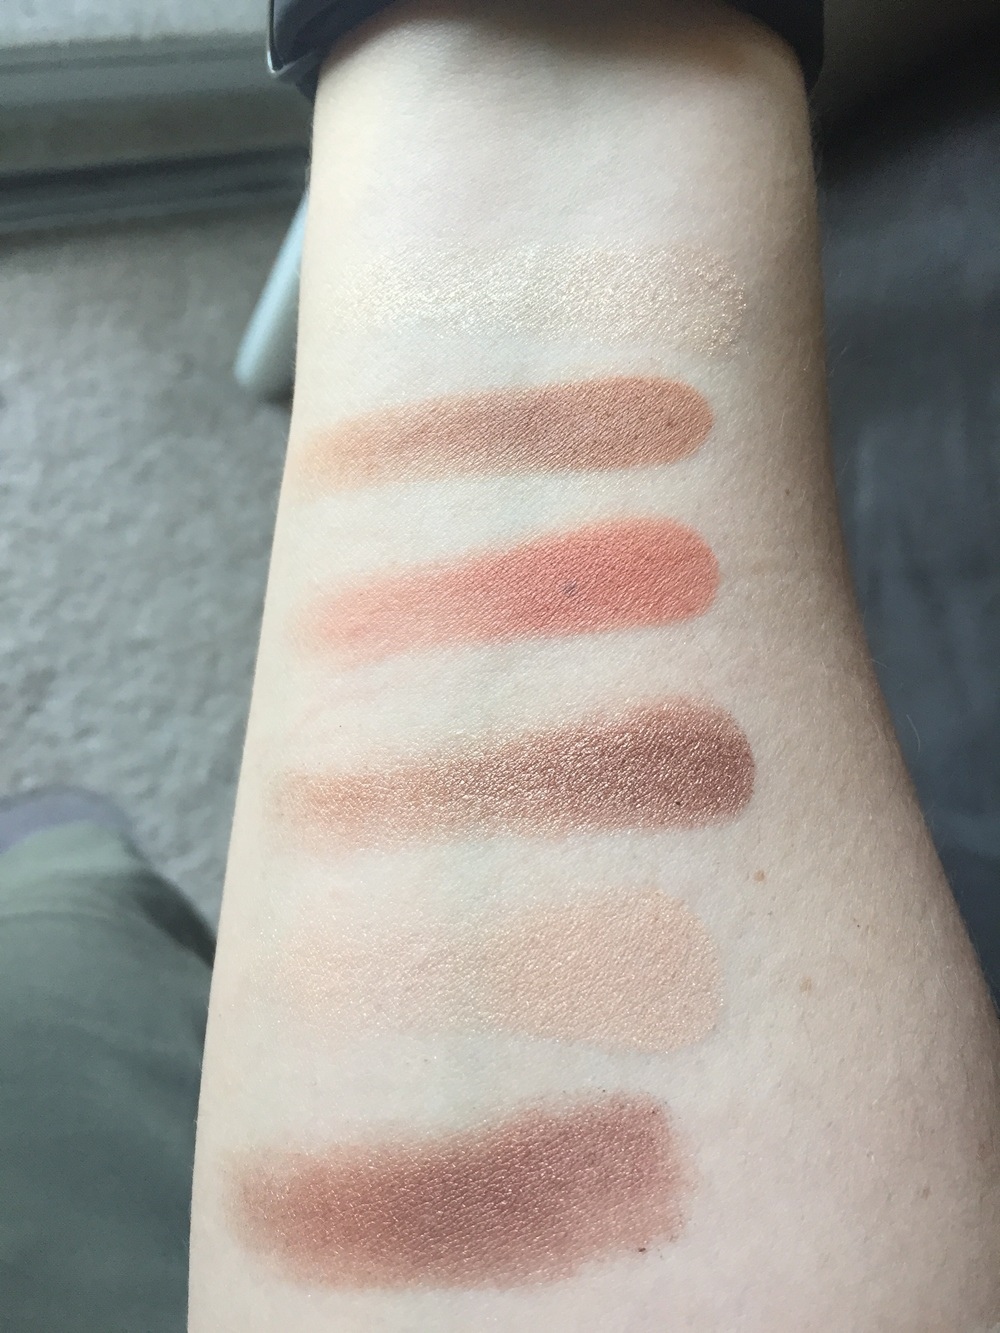 Palette swatched in sunlight